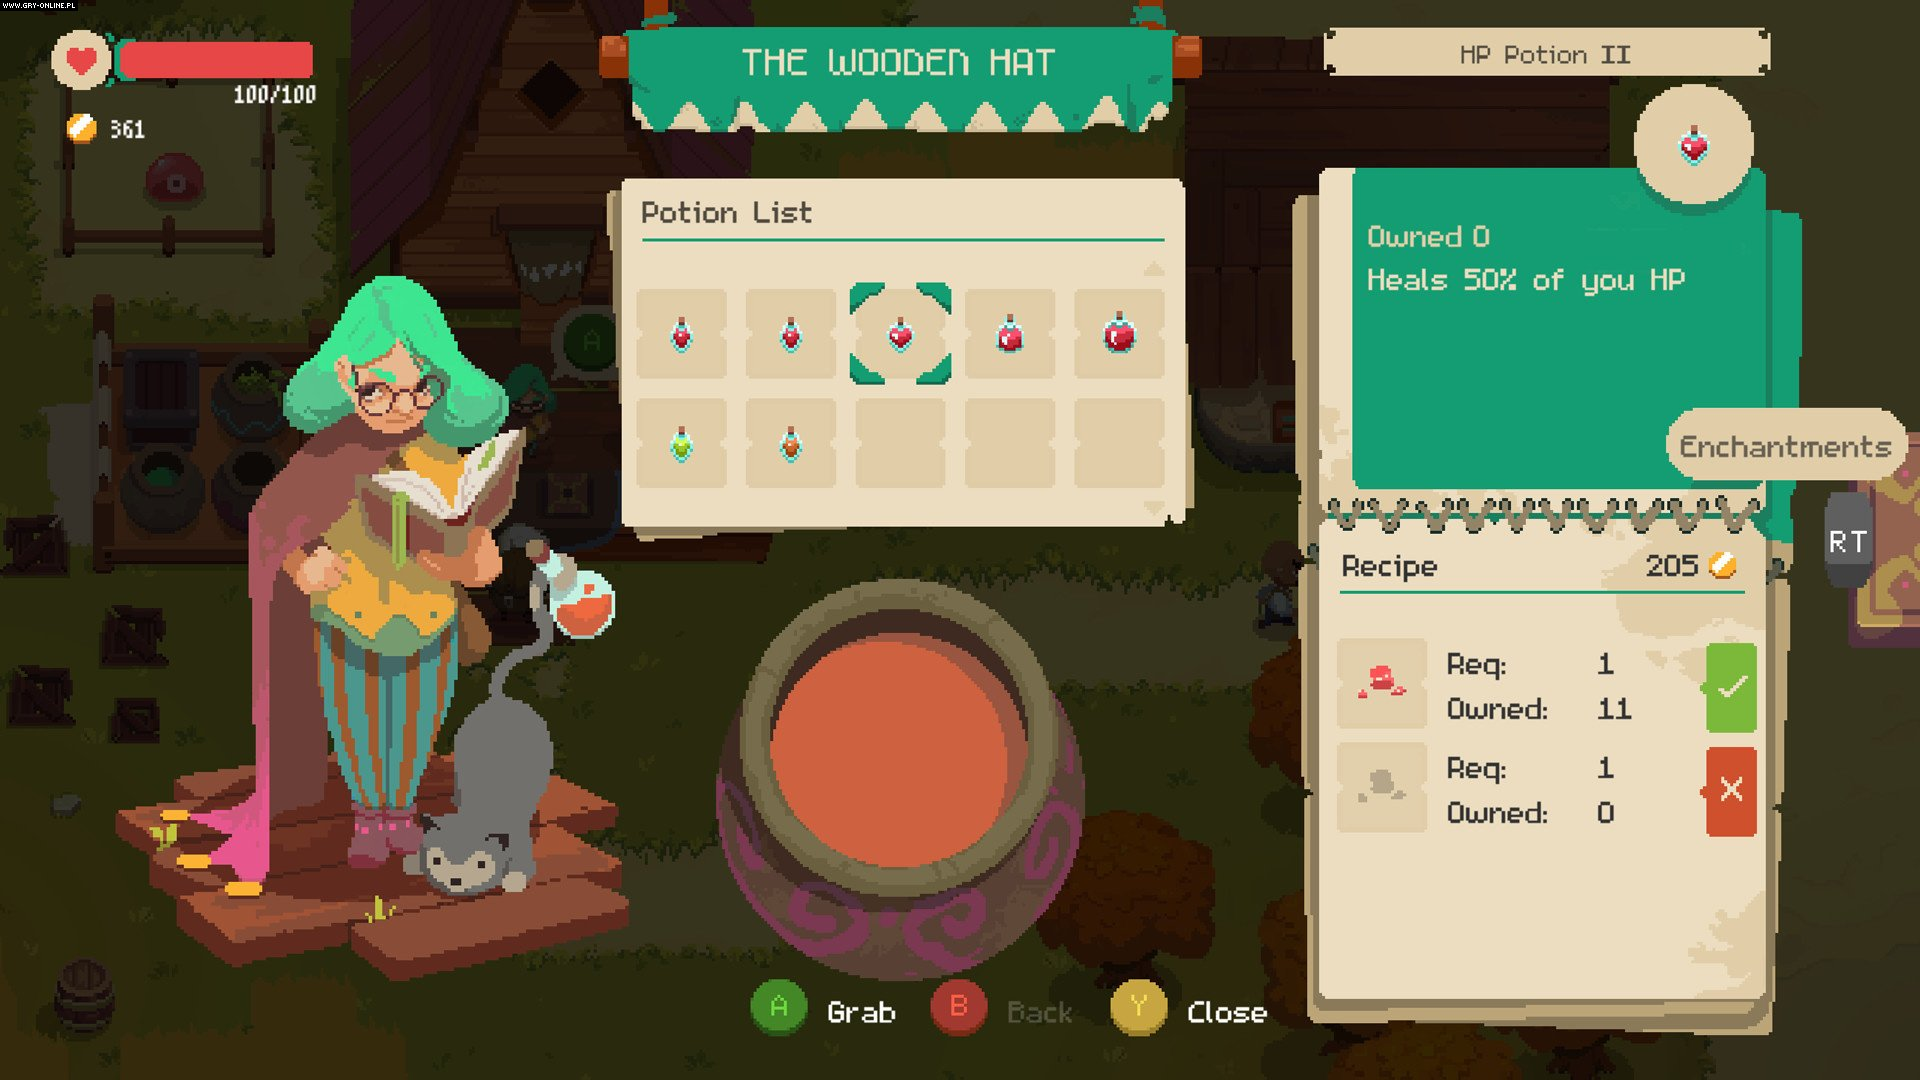 Moonlighter PC, PS4, XONE, Switch Gry Screen 1/25, Digital Sun Games, 11 bit studios